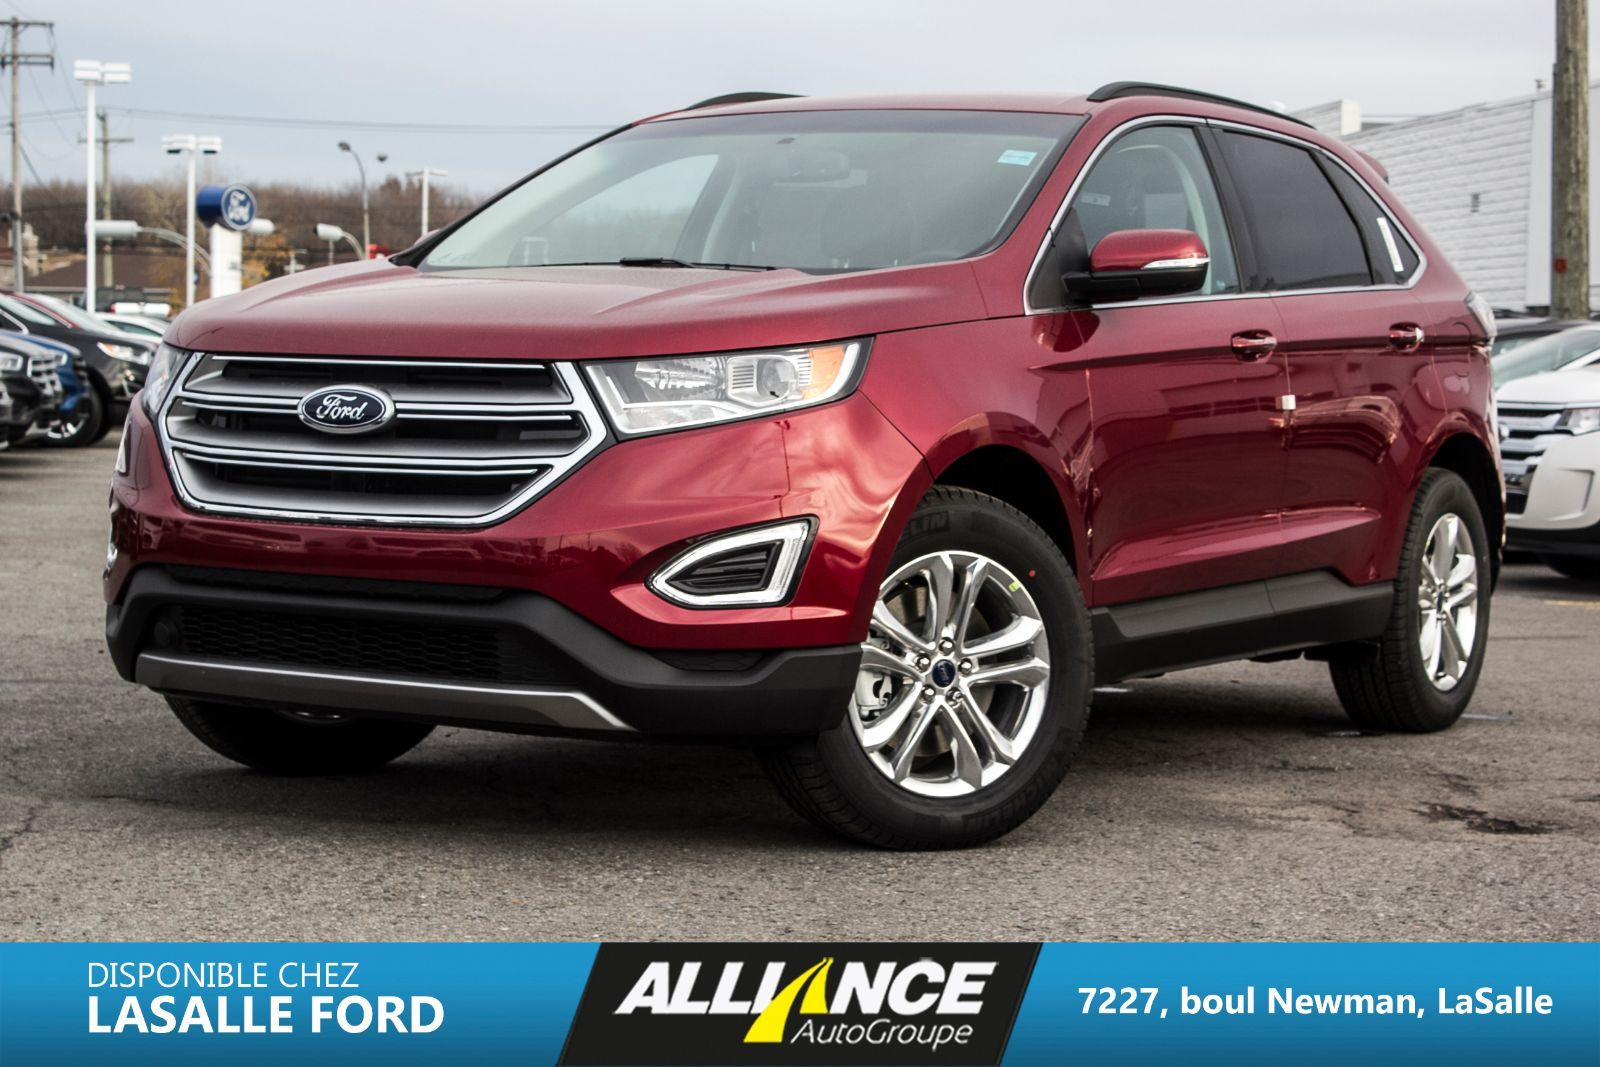 new 2016 ford edge sel for sale in montreal alliance autogroupe in montreal quebec. Black Bedroom Furniture Sets. Home Design Ideas